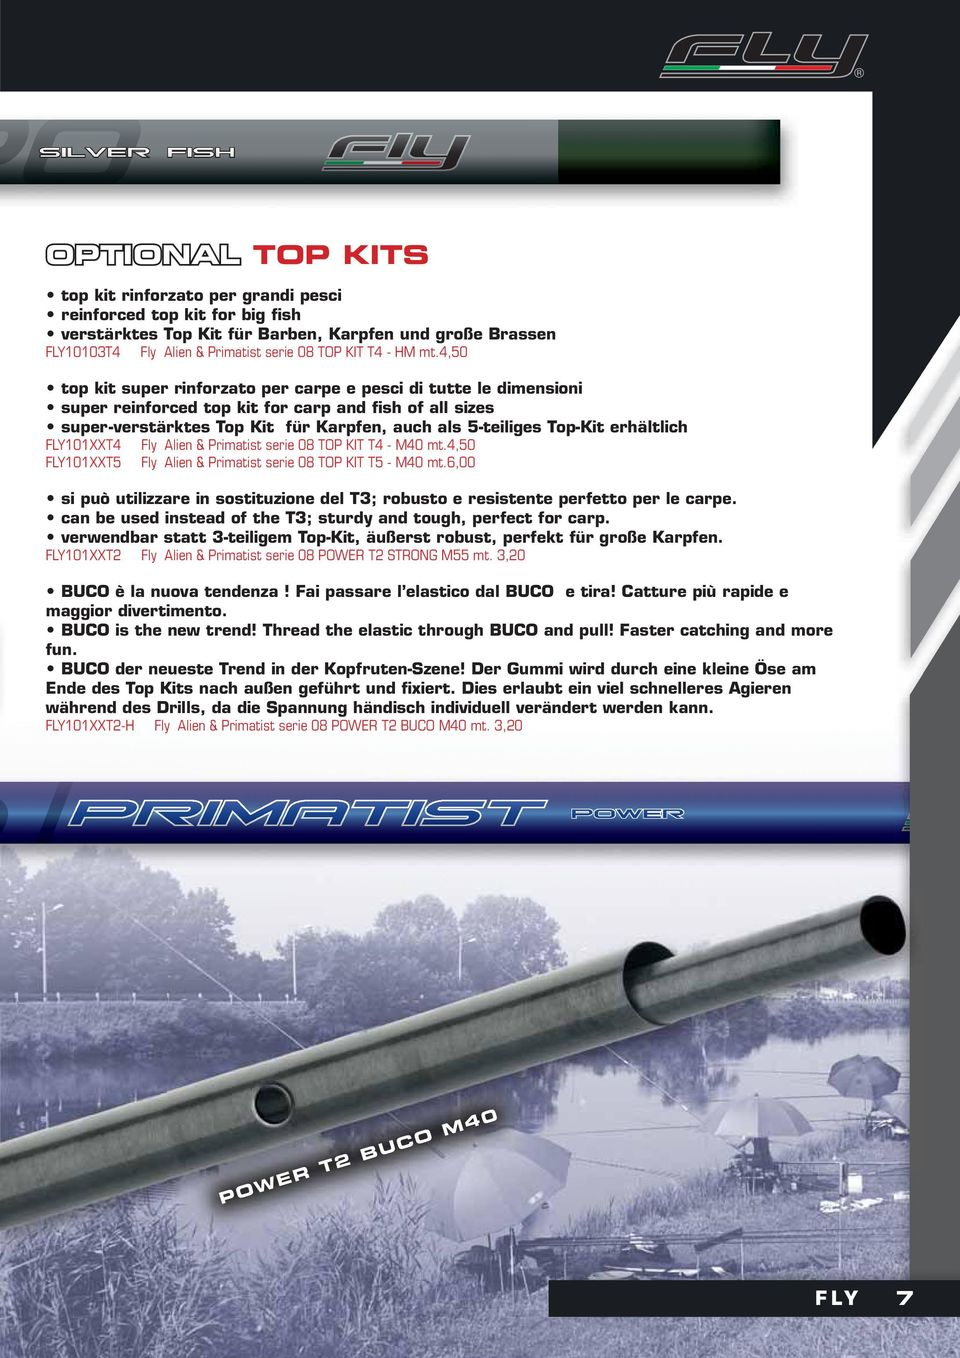 4,50 top kit super rinforzato per carpe e pesci di tutte le dimensioni super reinforced top kit for carp and fish of all sizes super-verstärktes Top Kit für Karpfen, auch als 5-teiliges Top-Kit